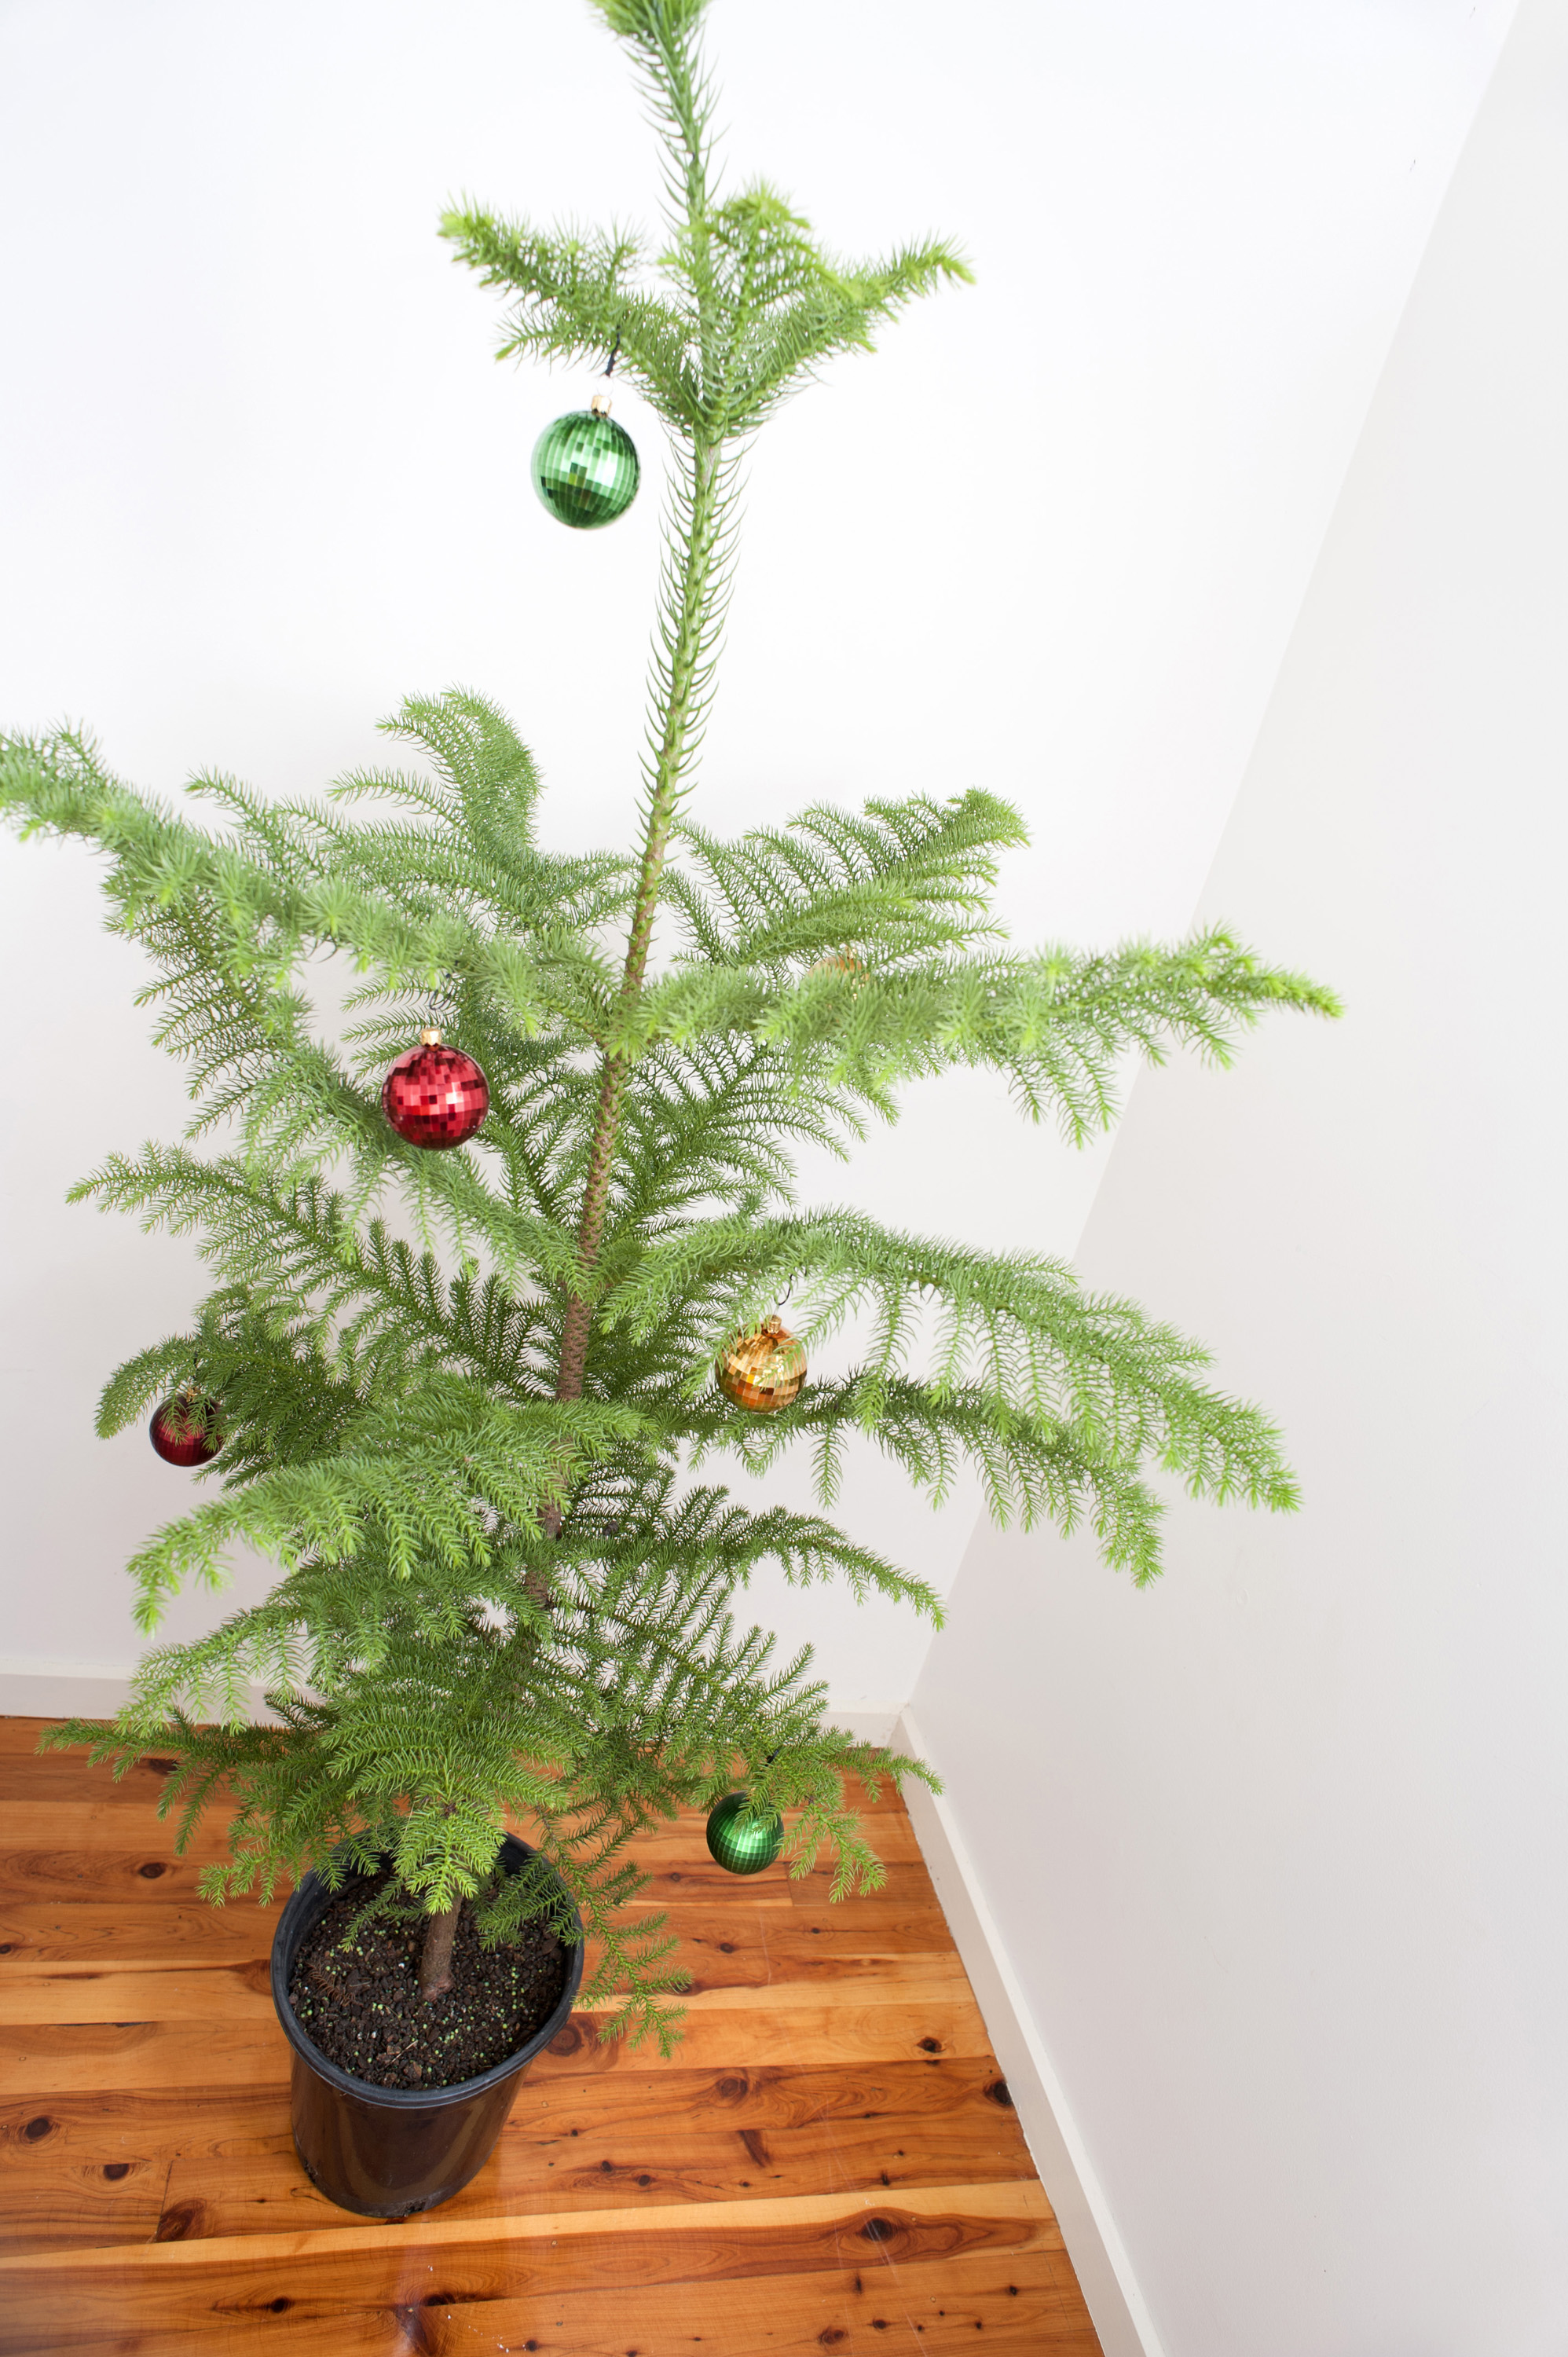 Simple Christmas tree with minimal coloured shiny baubles hanging on the branches of a small dainty natural pine tree on a plain hardwood floor